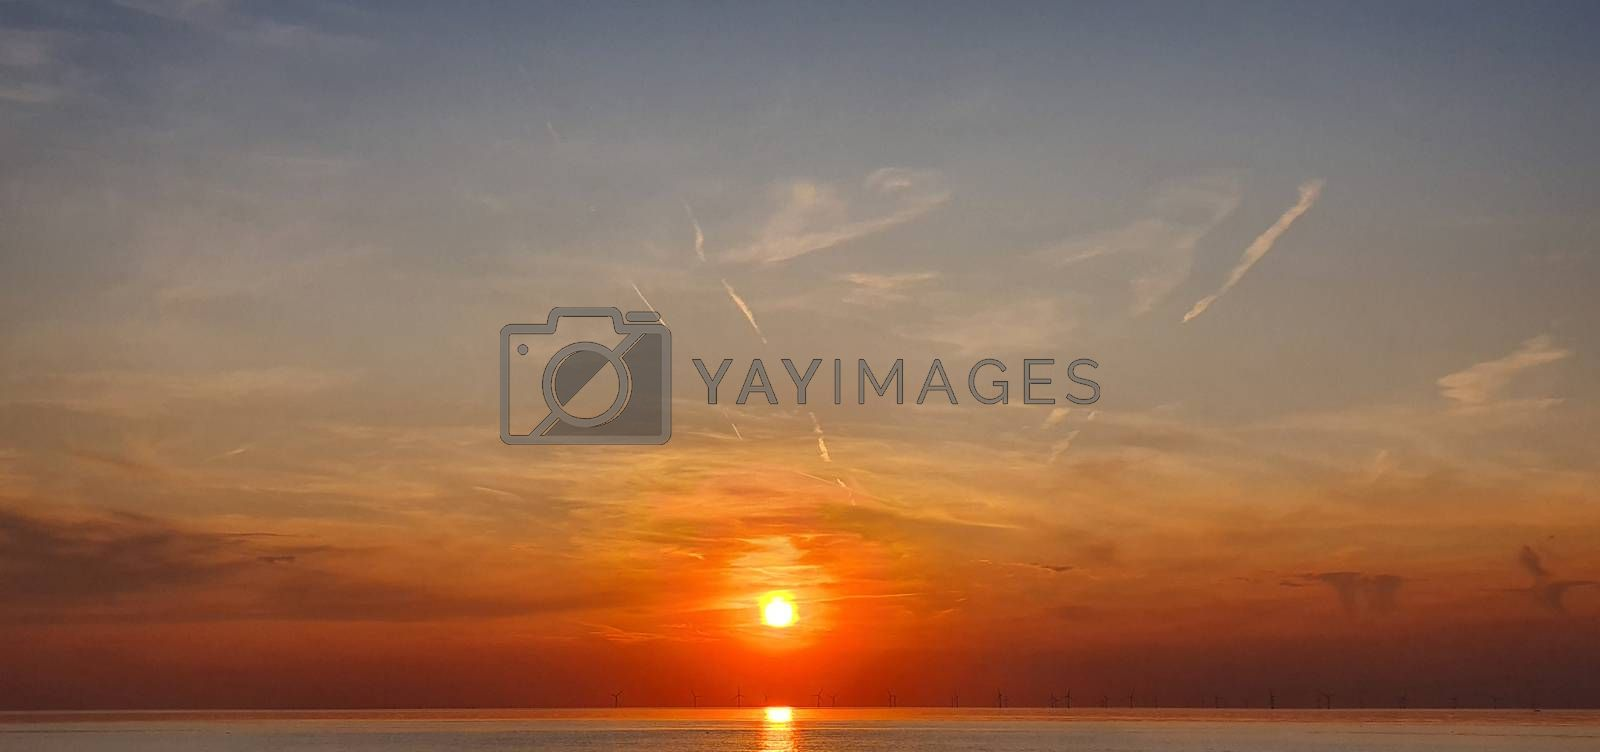 Windmills in the North Sea during fiery orange sunset.